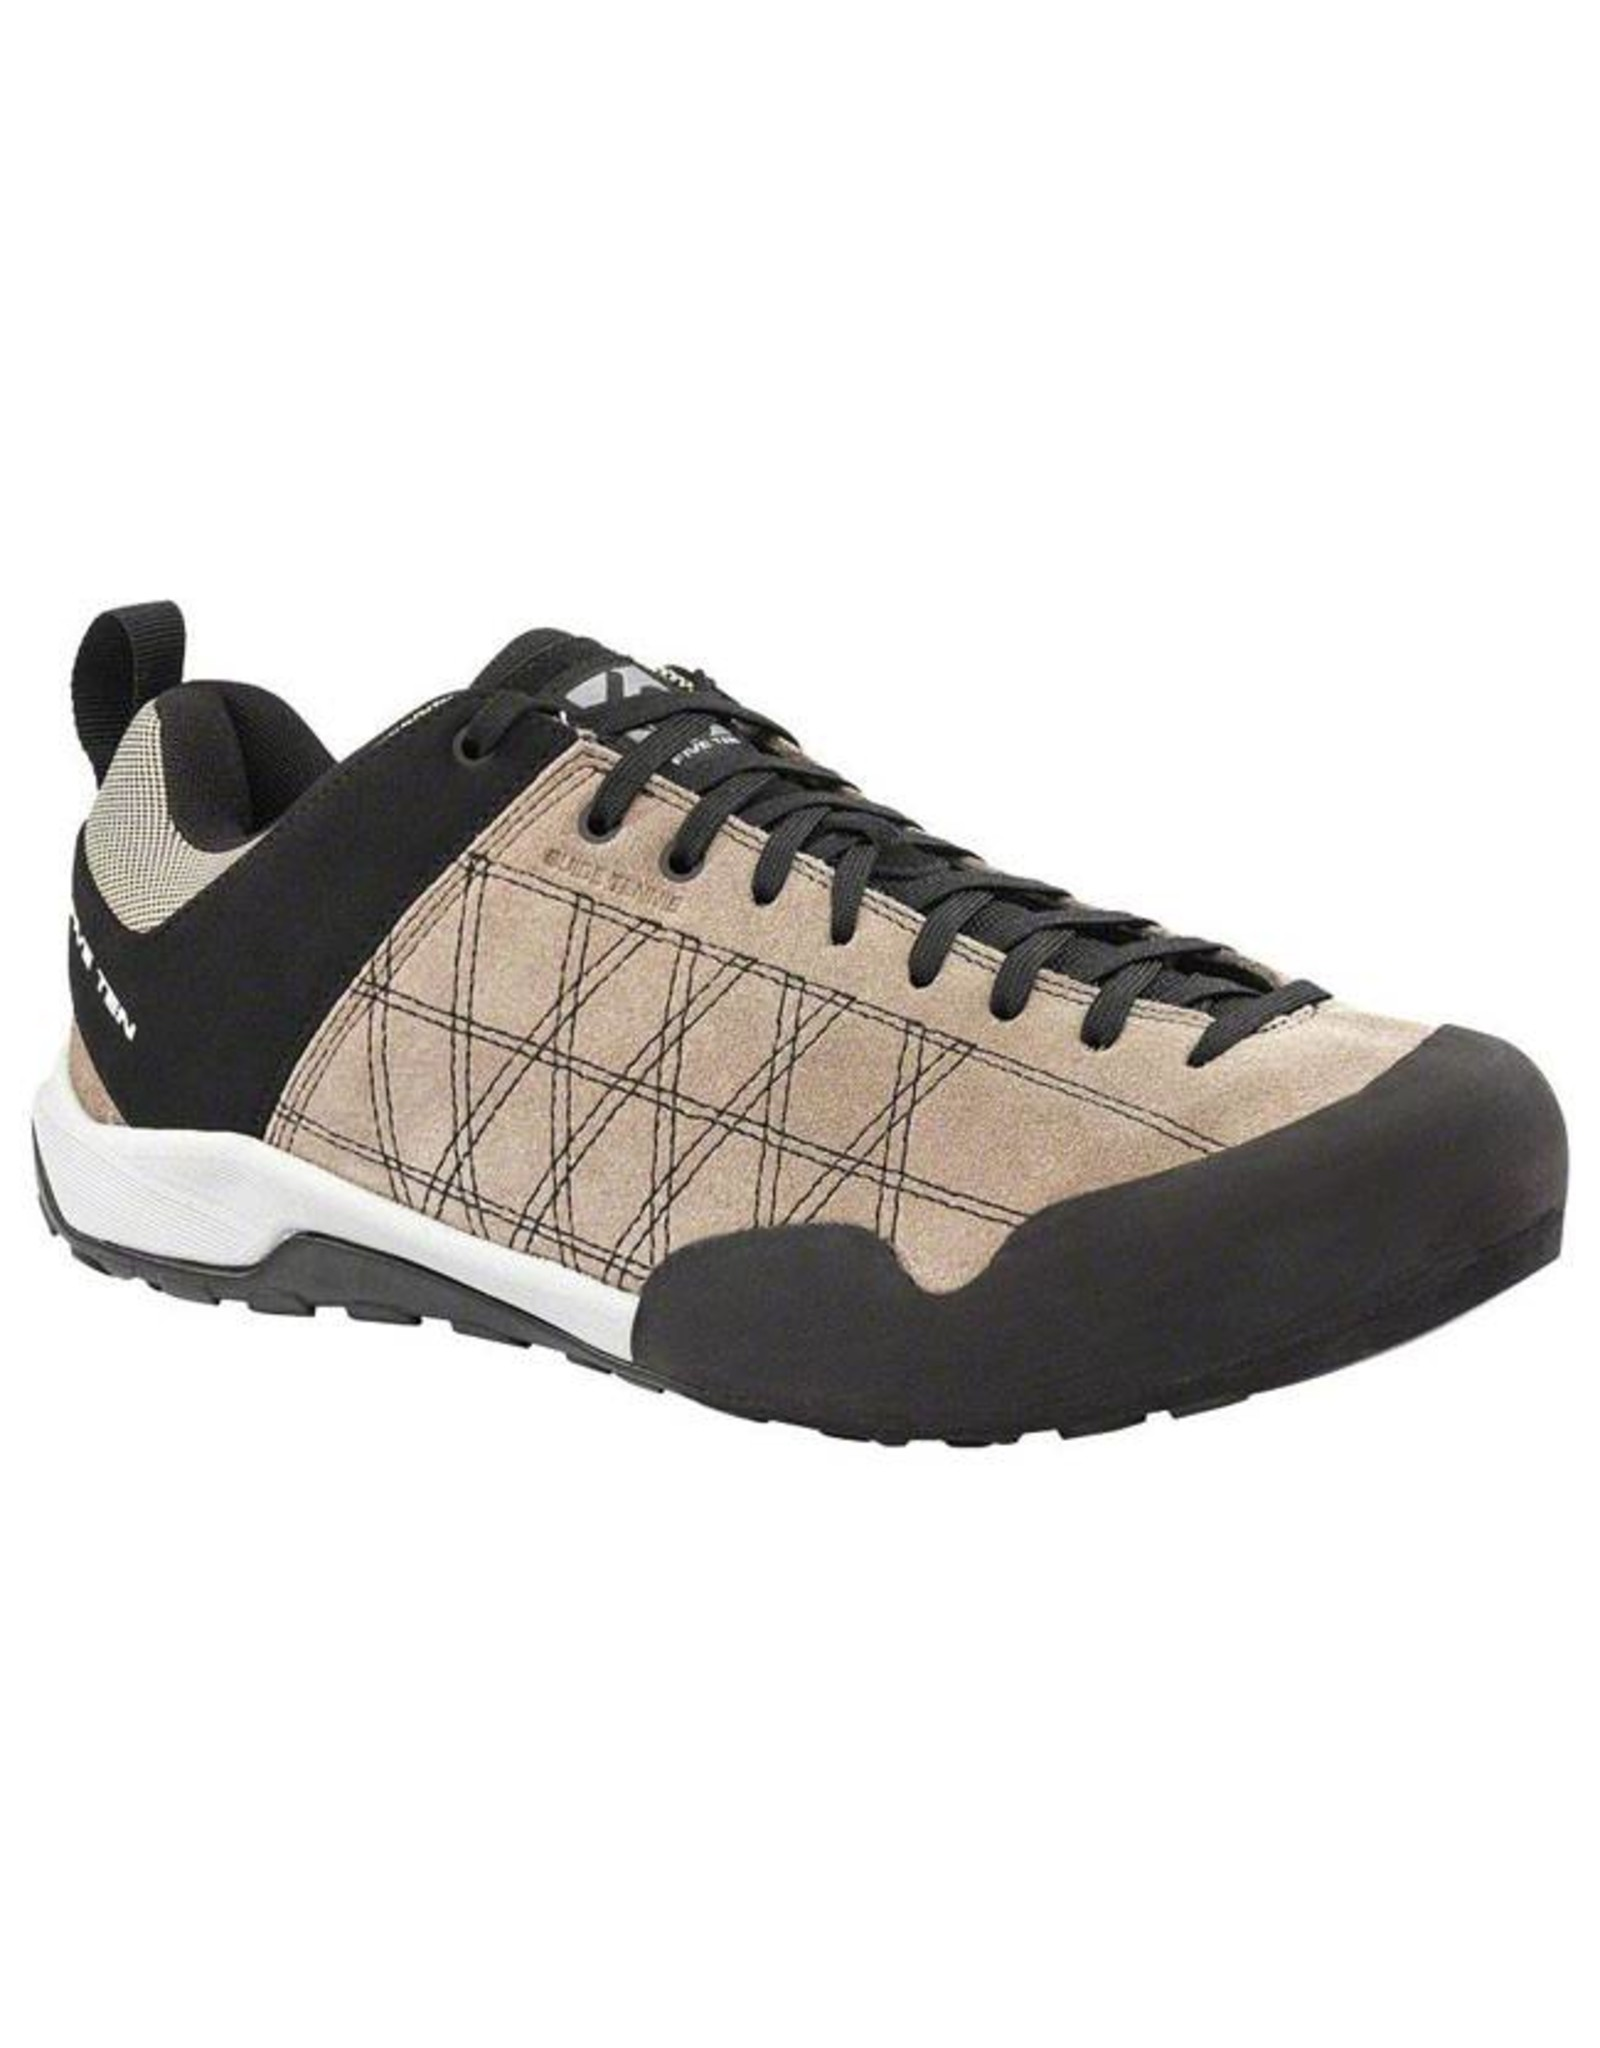 Five Ten Five Ten Guide Tennie Men's Approach Shoe: Twine 8.5